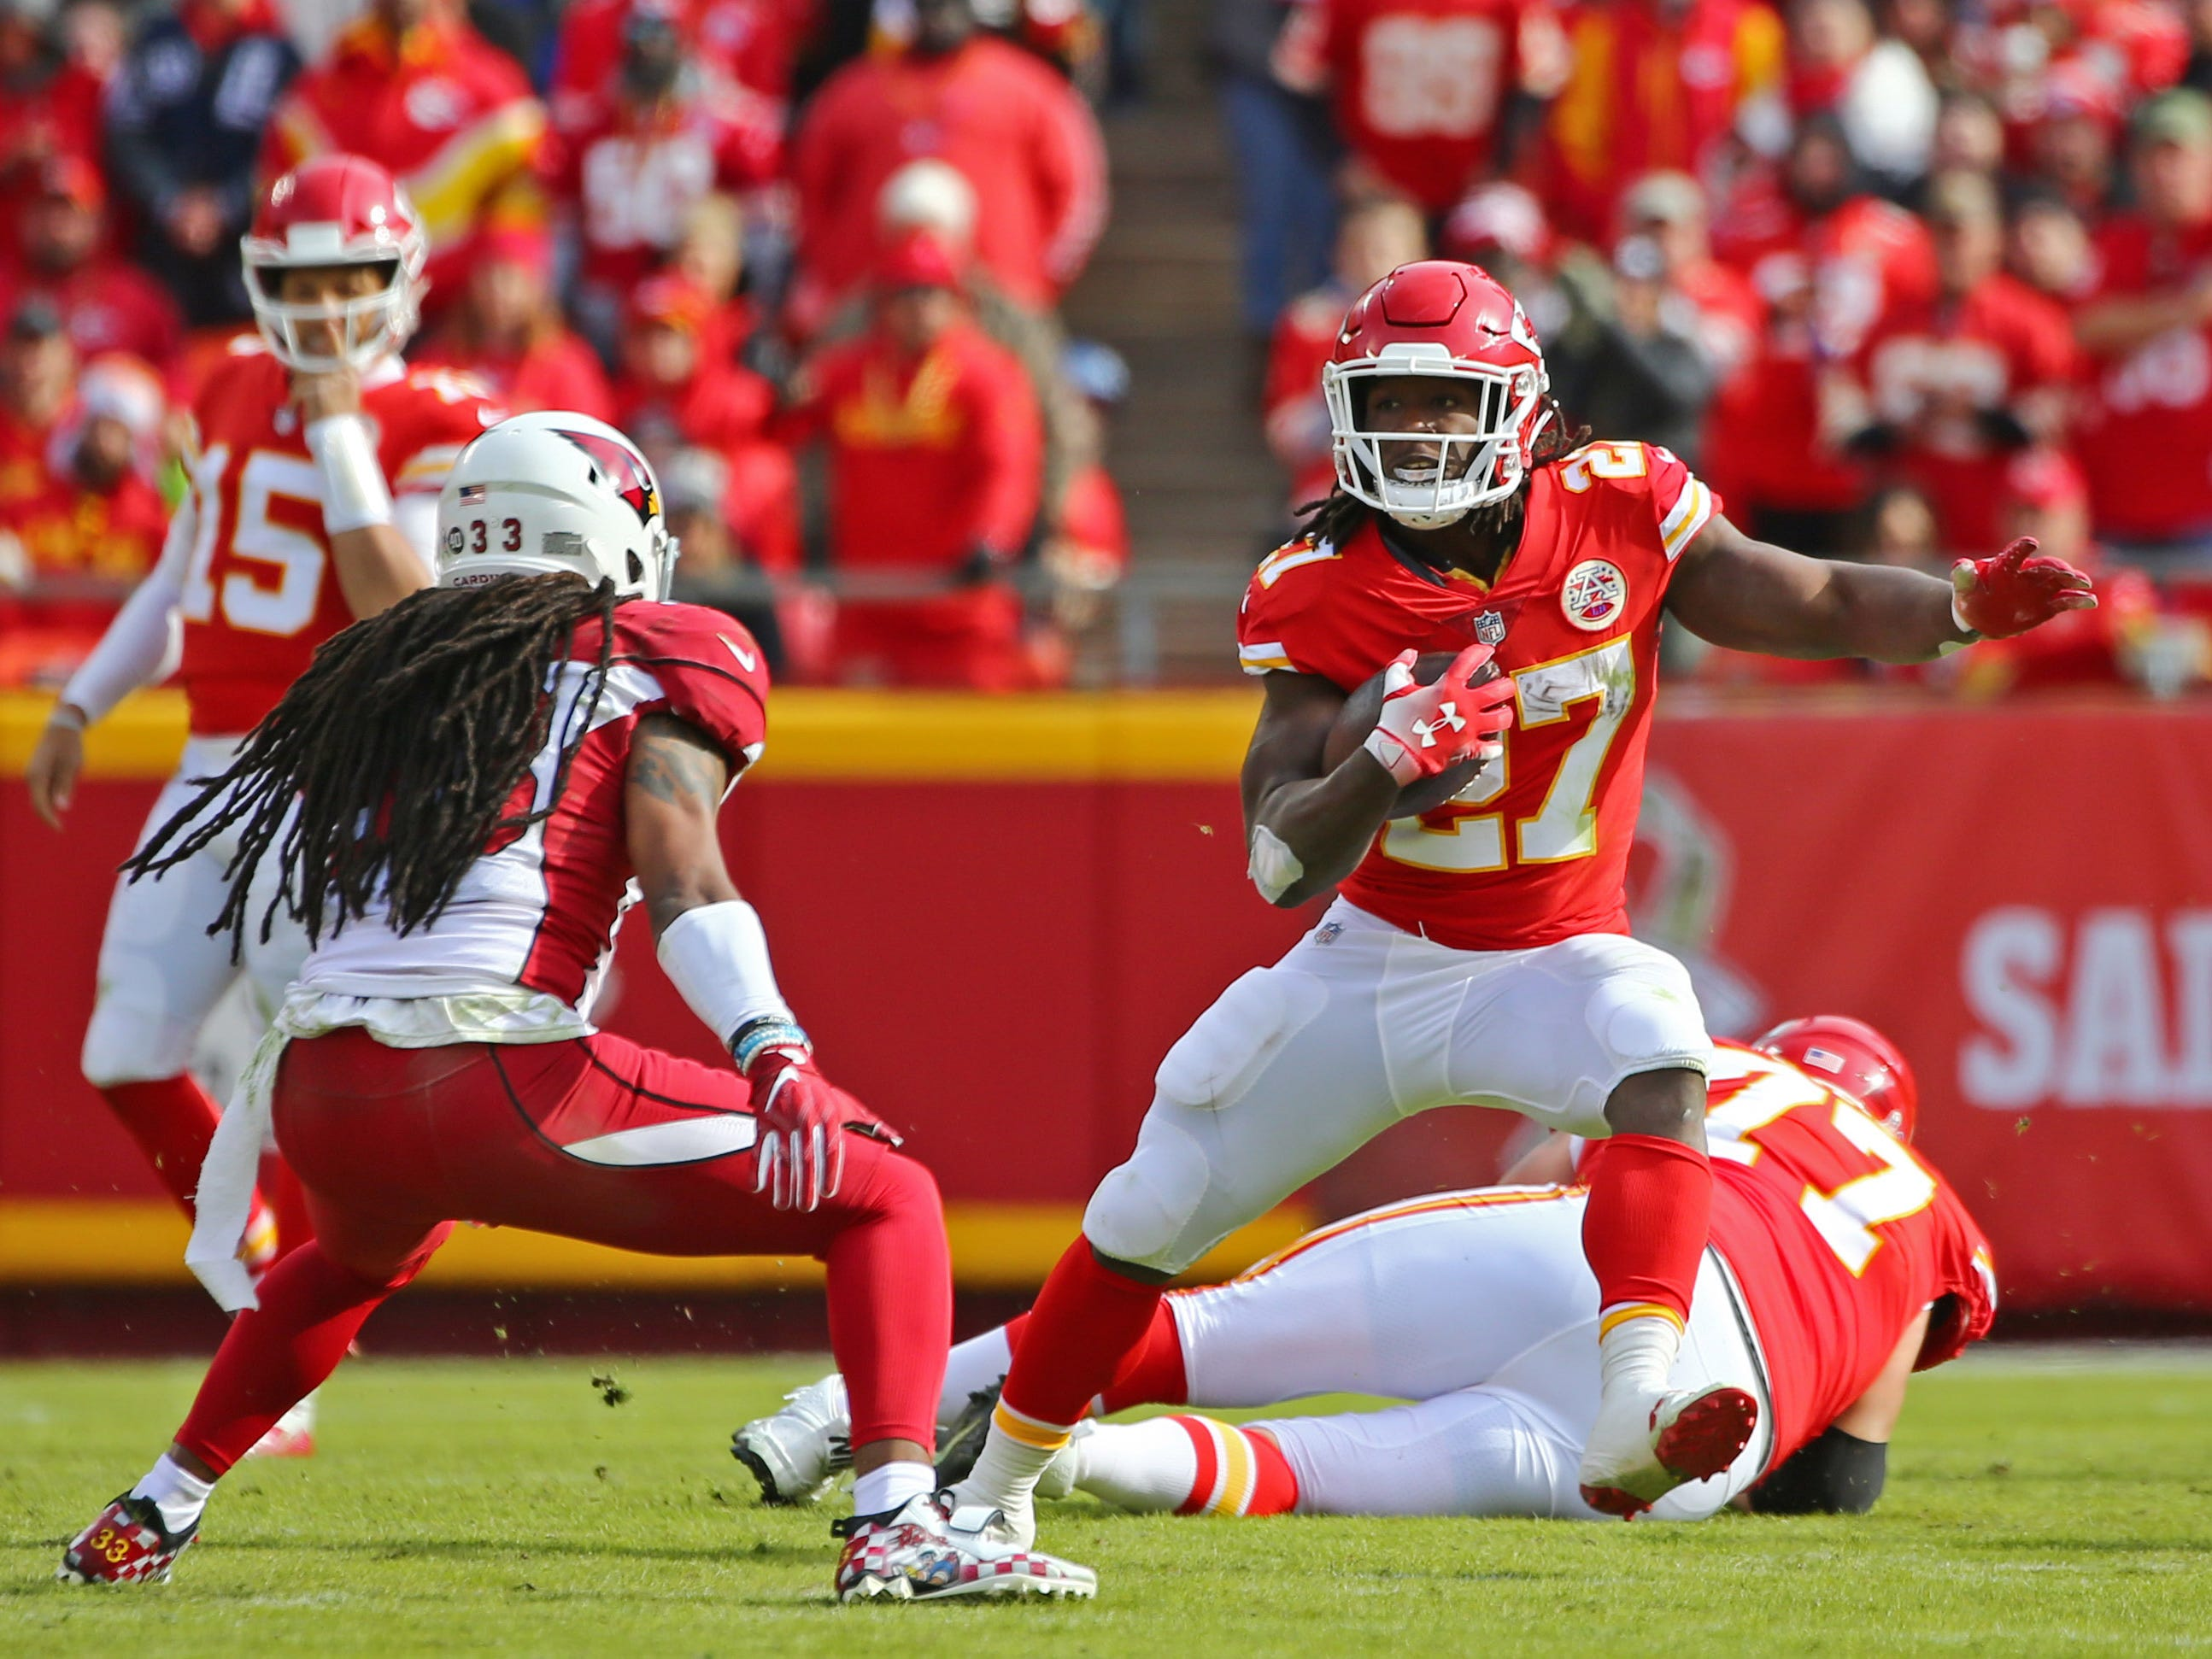 Nov 11, 2018; Kansas City, MO, USA; Kansas City Chiefs running back Kareem Hunt (27) runs against Arizona Cardinals safety Tre Boston (33) in the first half at Arrowhead Stadium. Mandatory Credit: Jay Biggerstaff-USA TODAY Sports